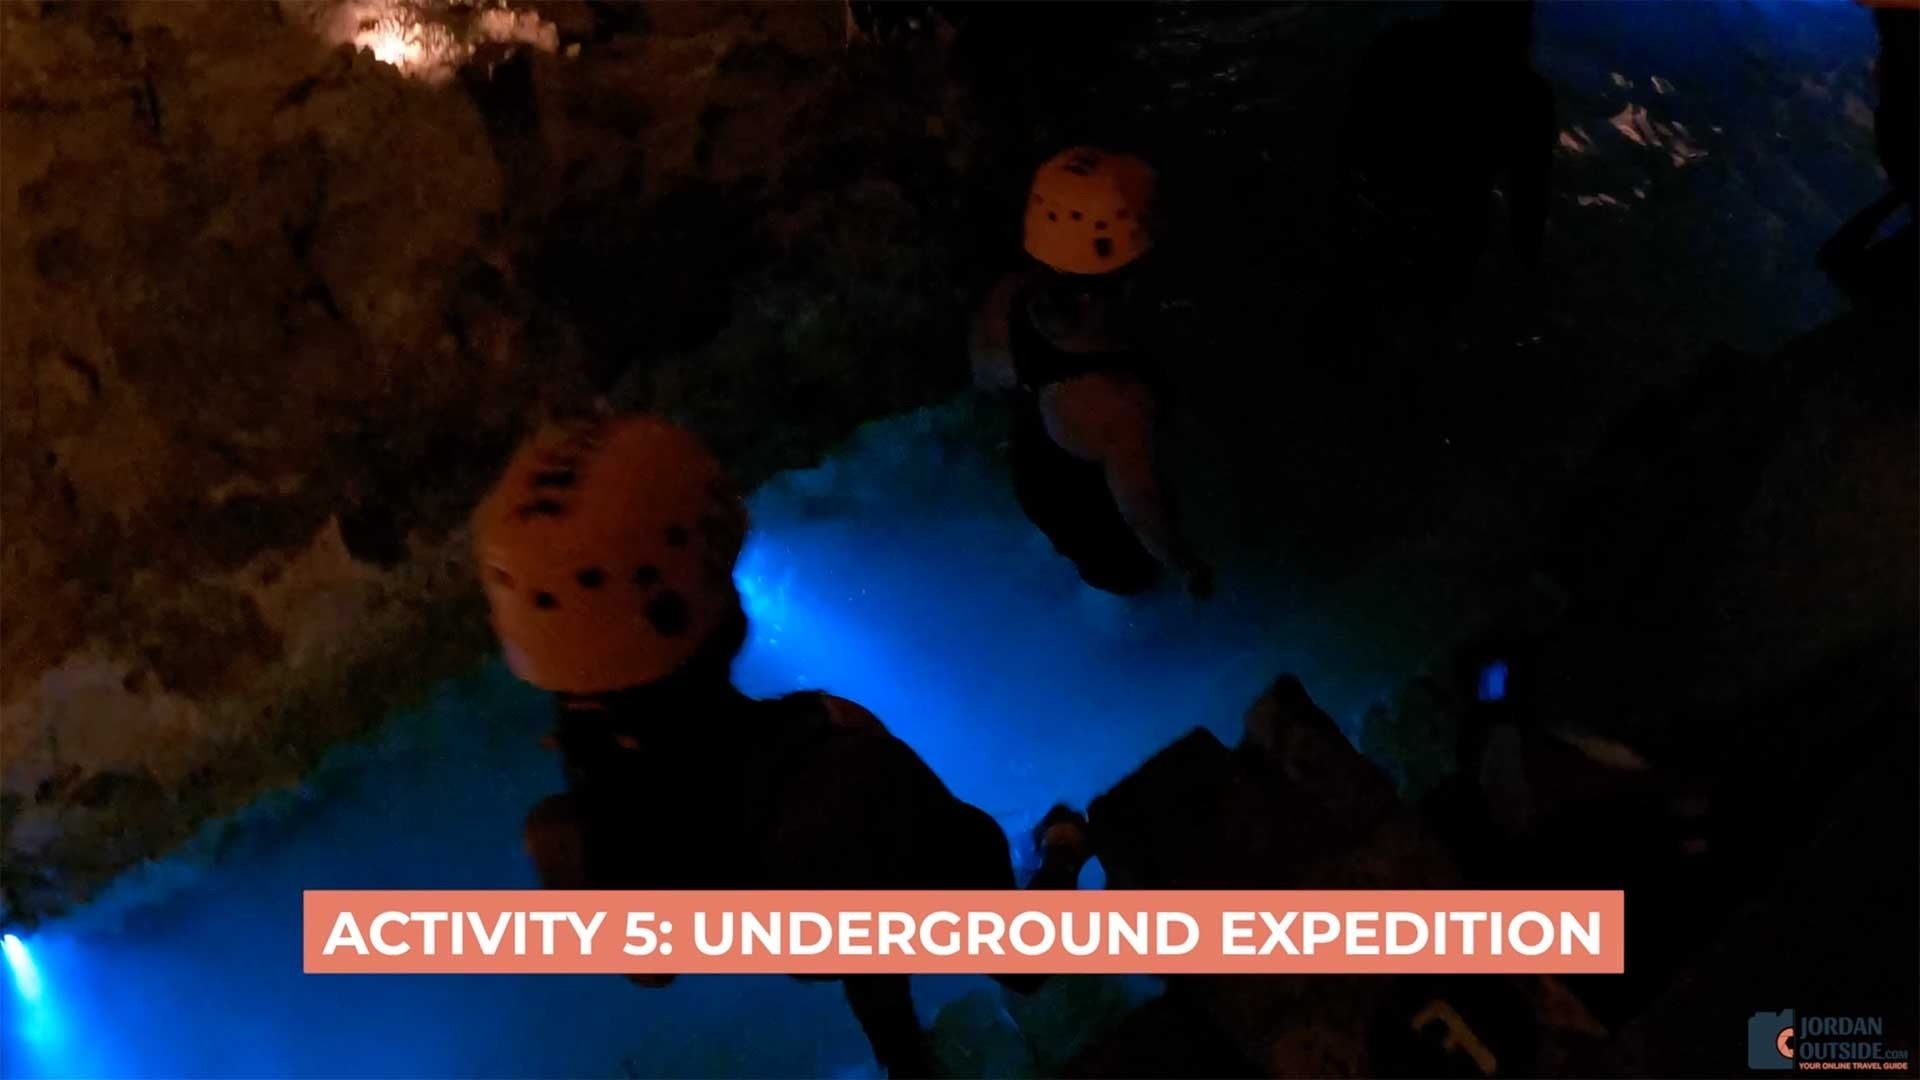 Underground Expedition at Xplor